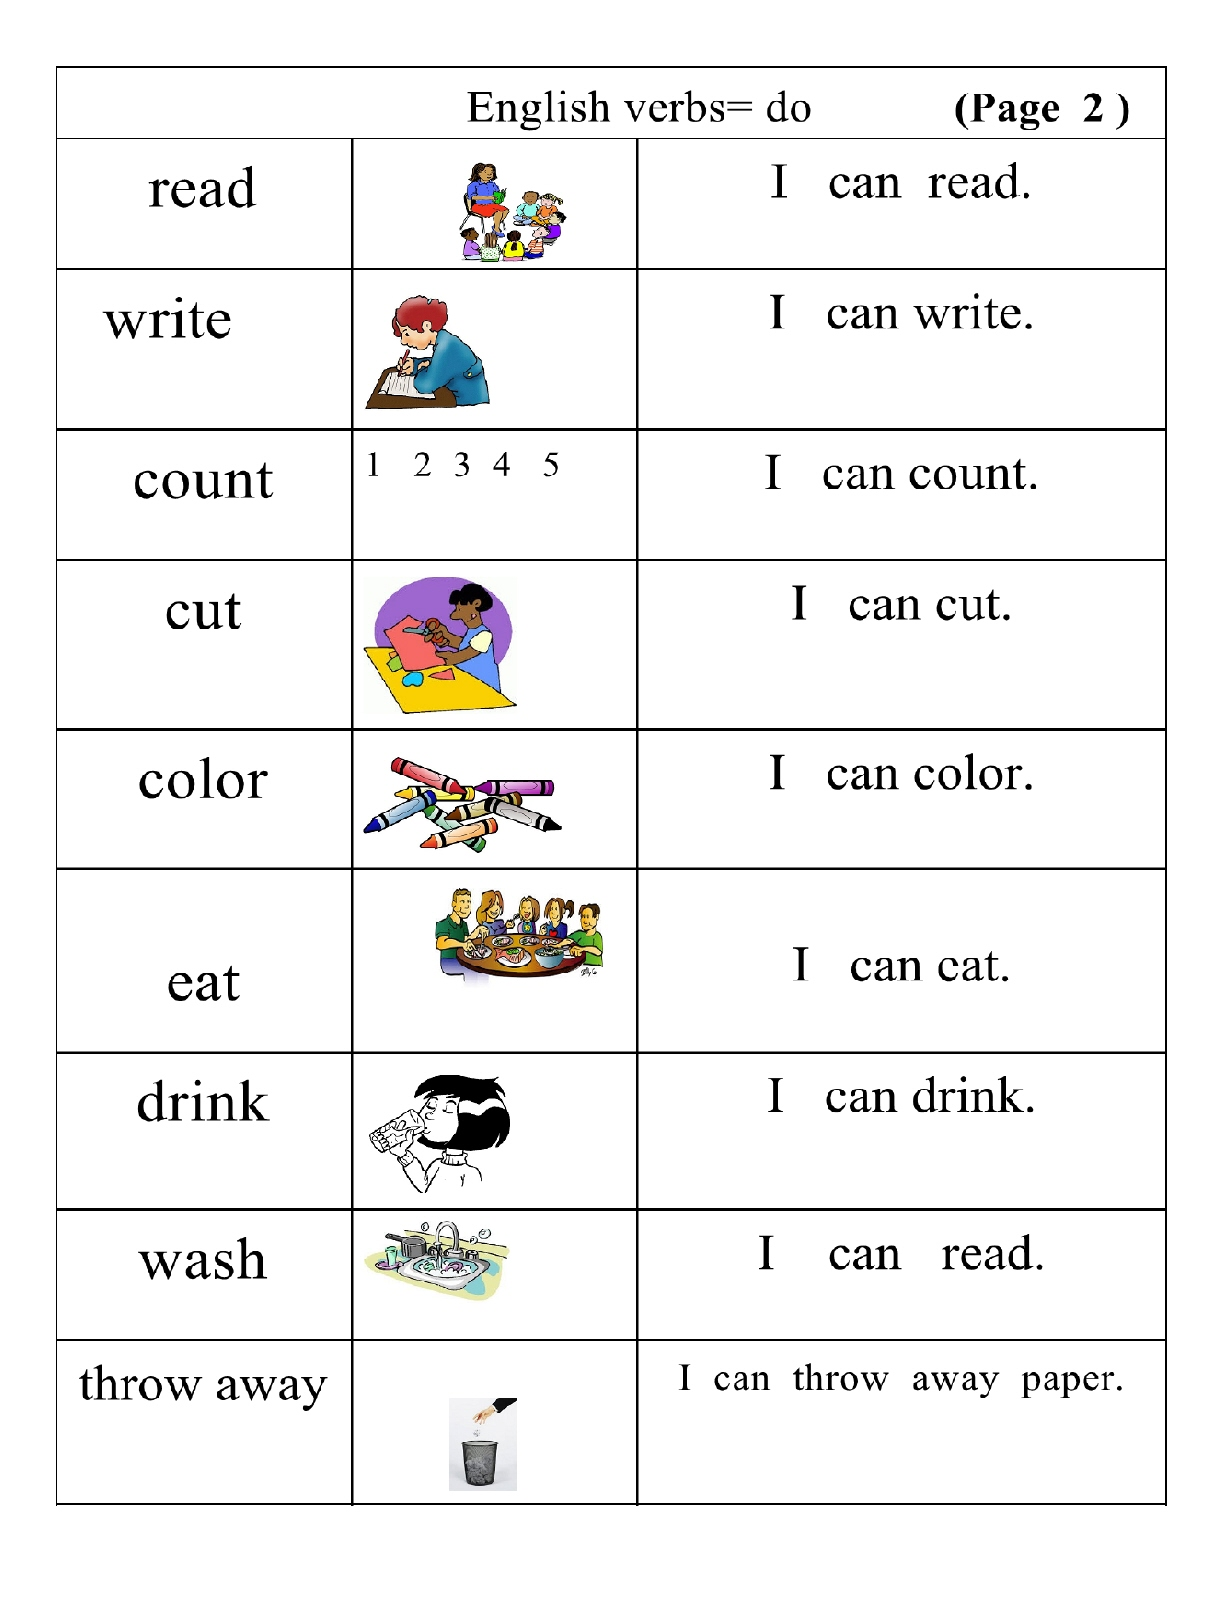 Worksheet Learn Verb 2 two word verbs in english browse millions of pdf books learning and using phrasal is an extremely important part mastering english